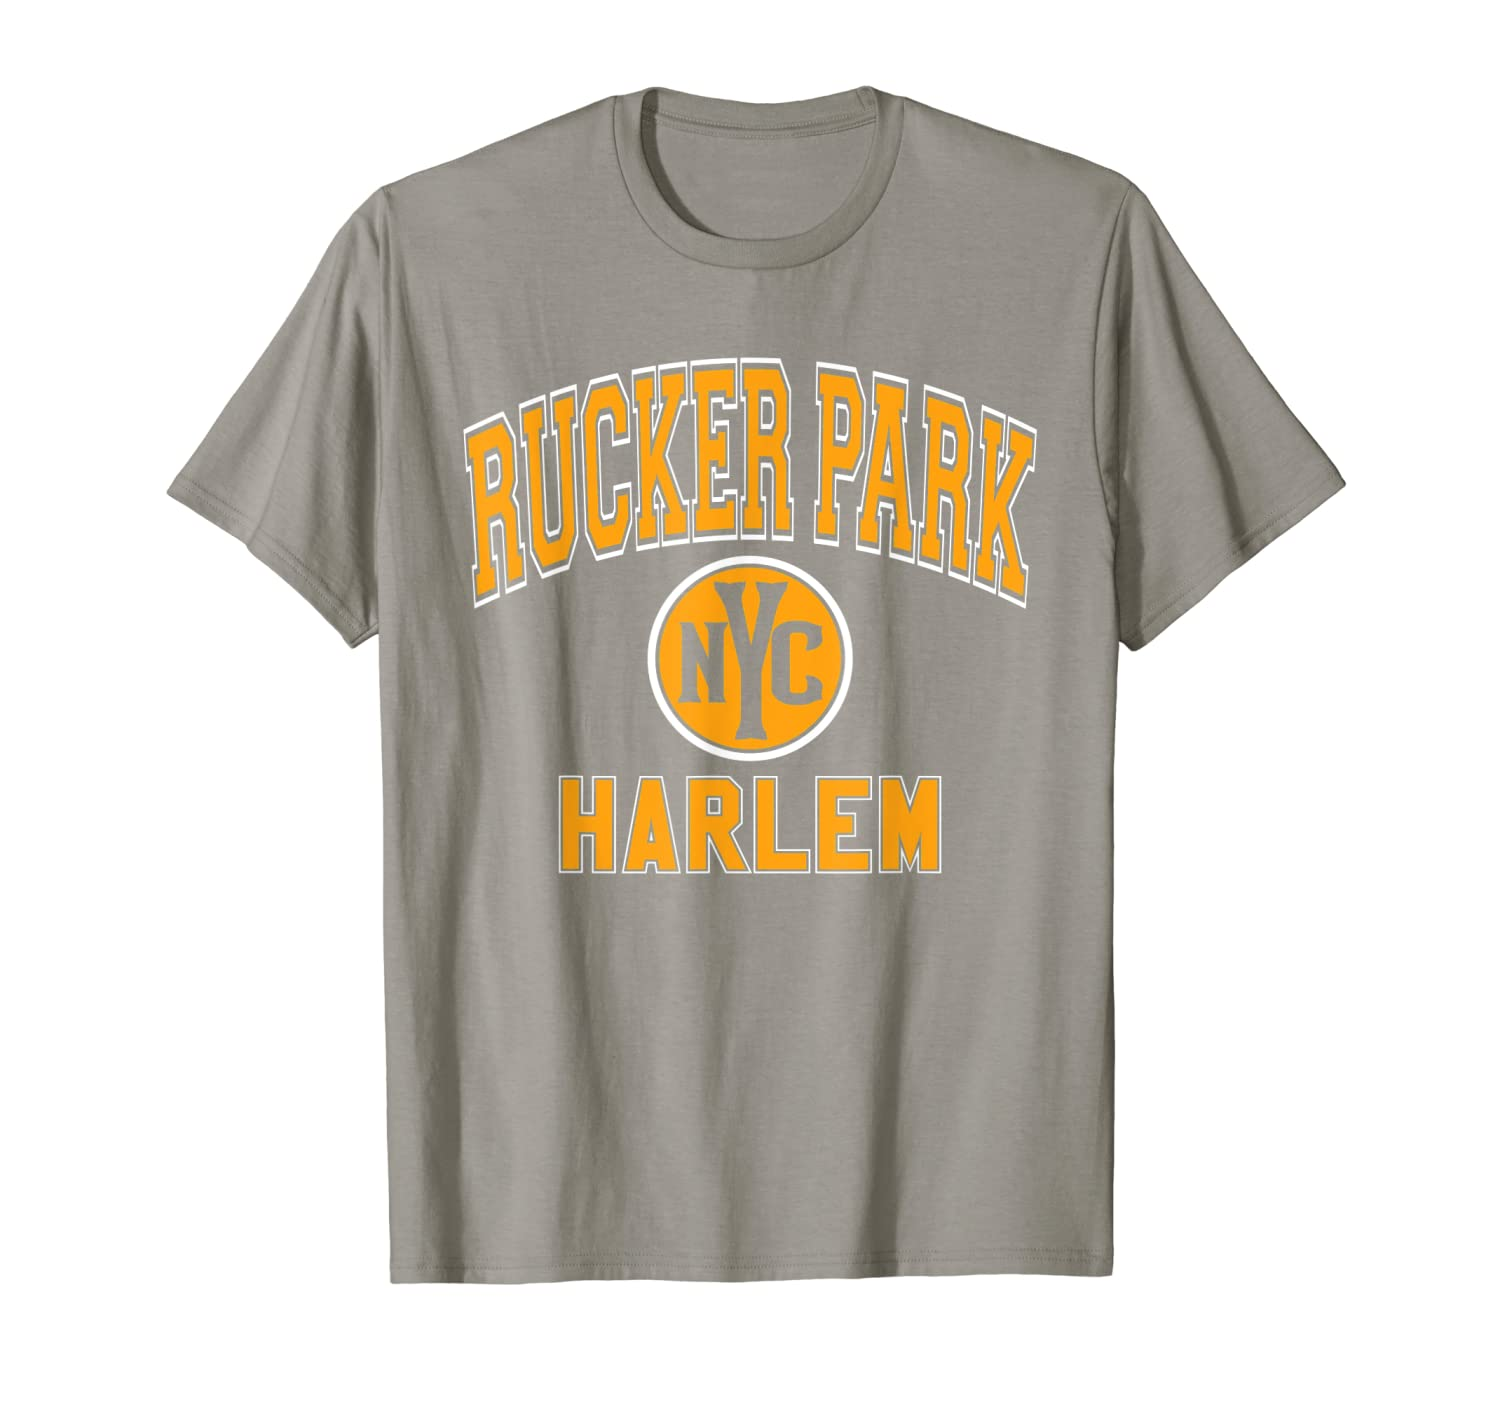 Rucker Park Varsity Style NYC Orange Print T-Shirt